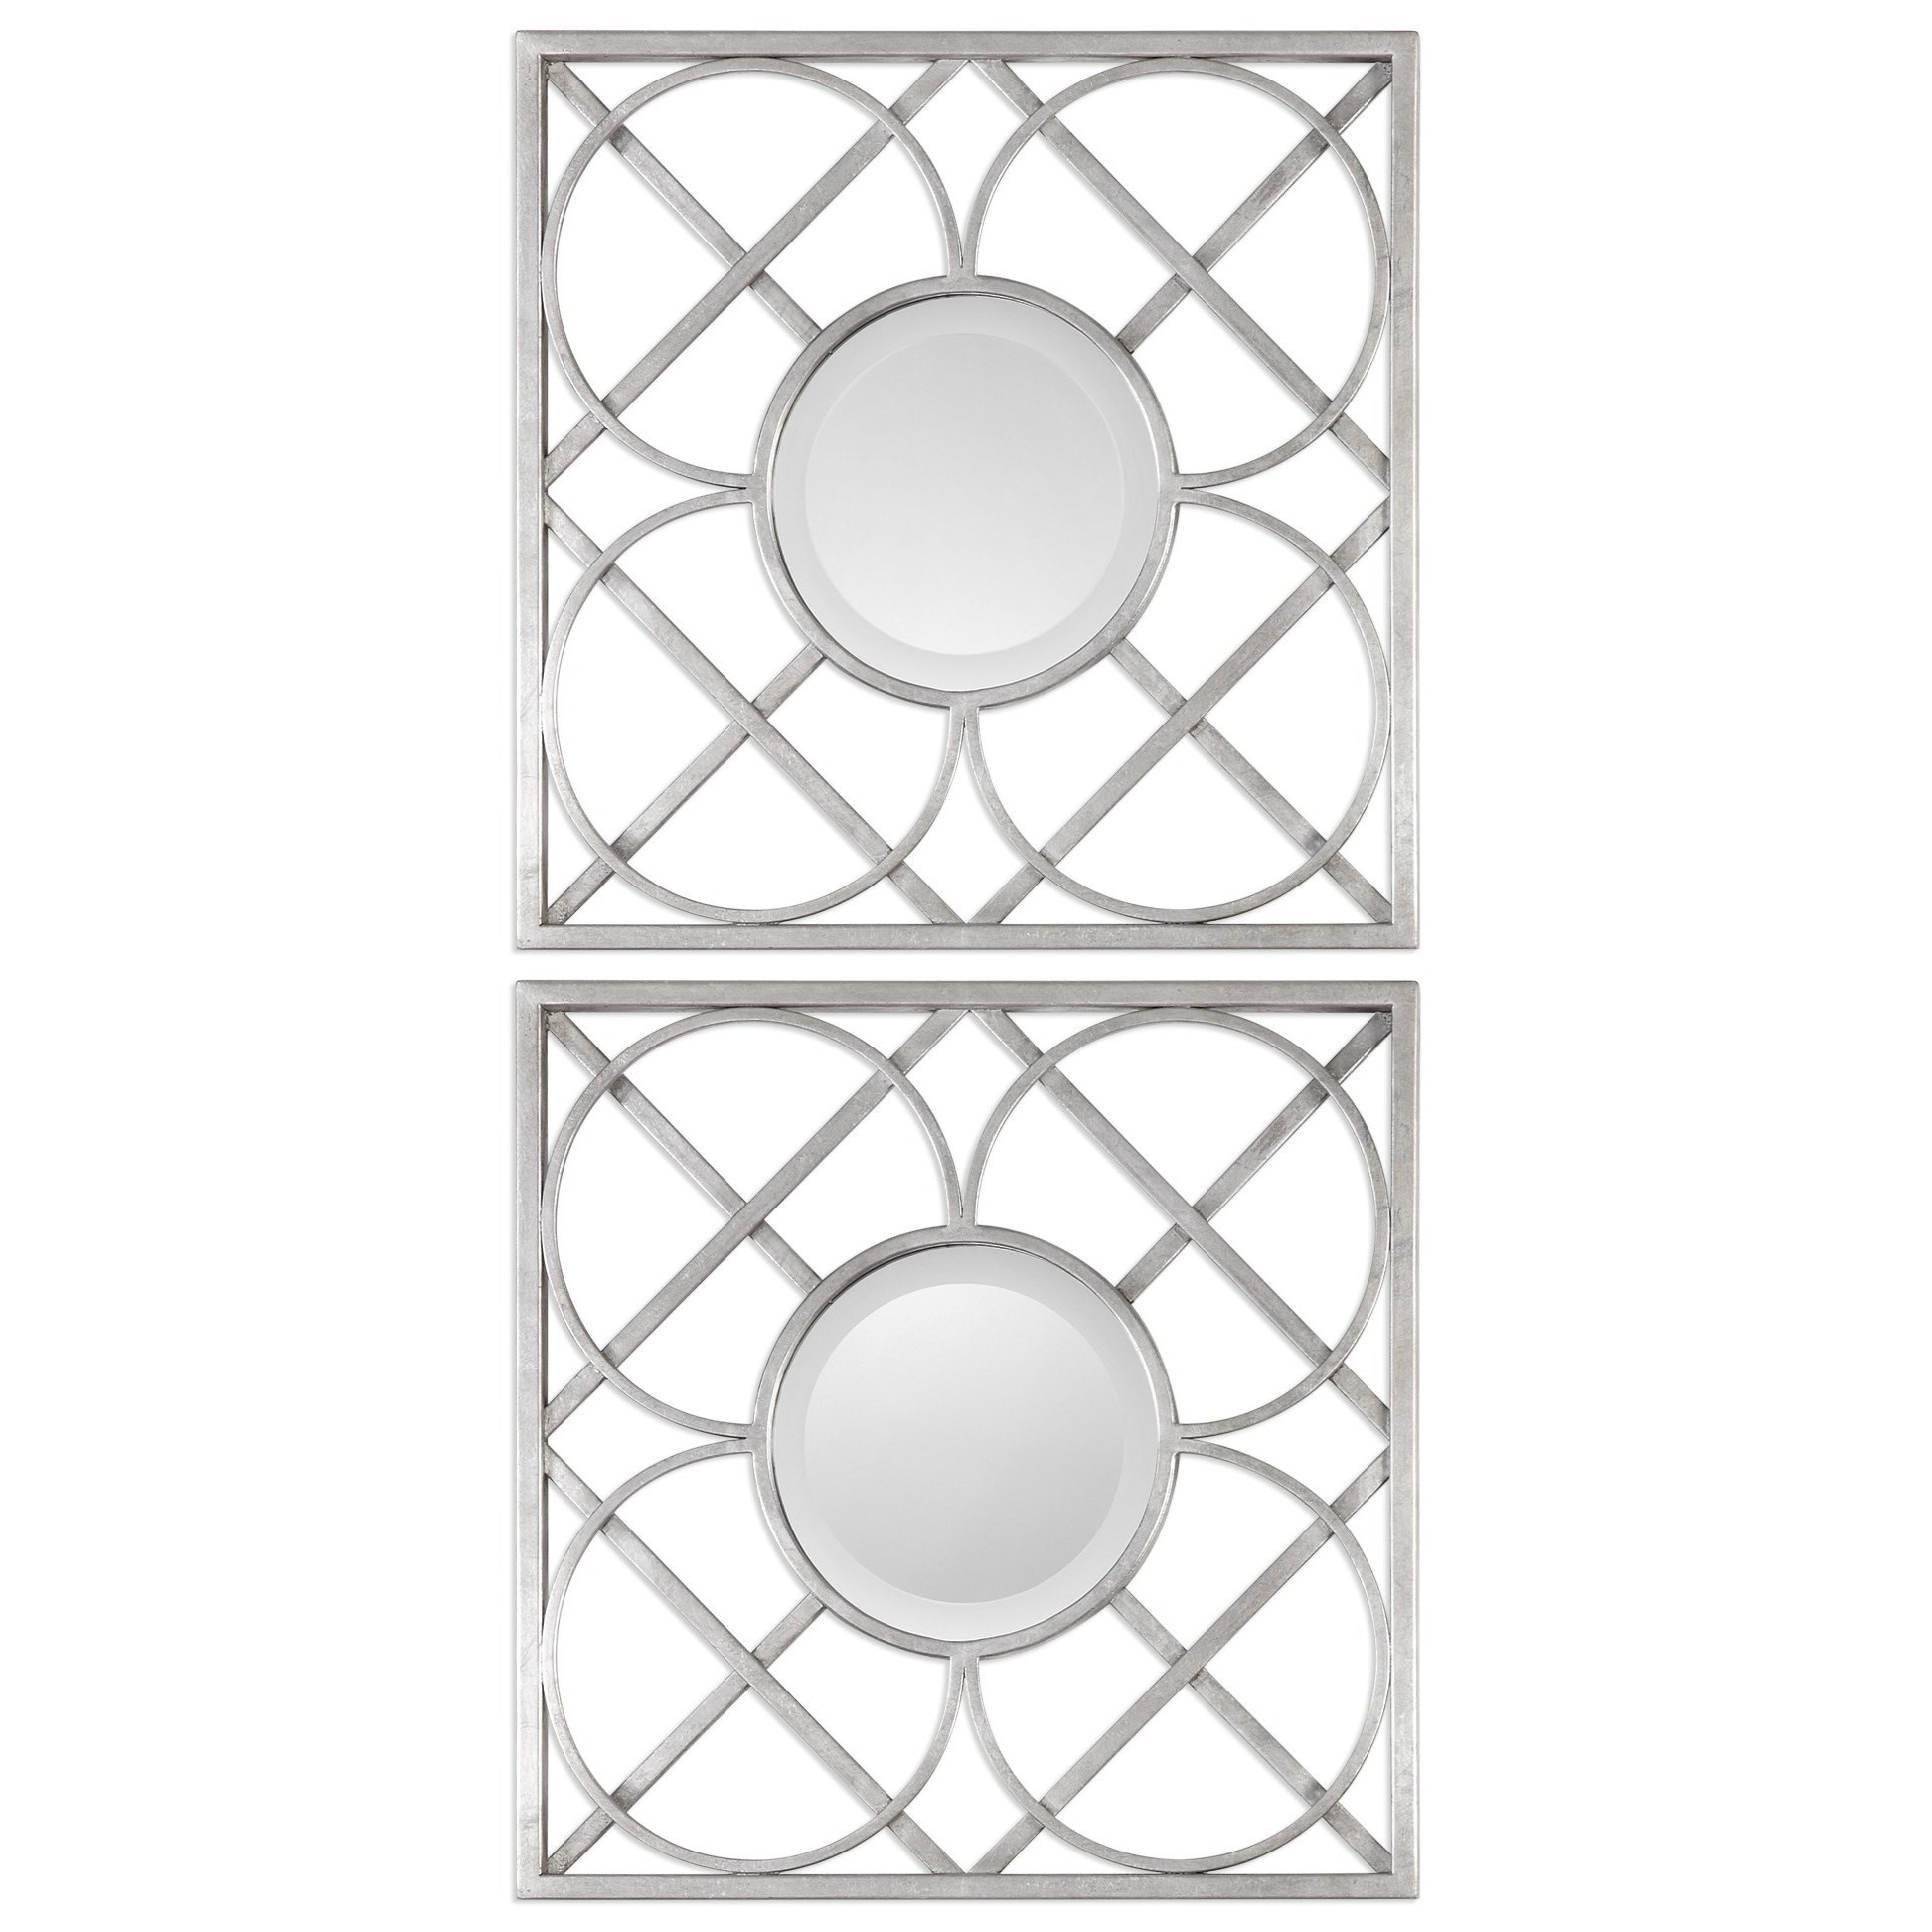 Uttermost Mirrors  Yasmina Silver Square Mirrors (Set of 2) - Item Number: 09177